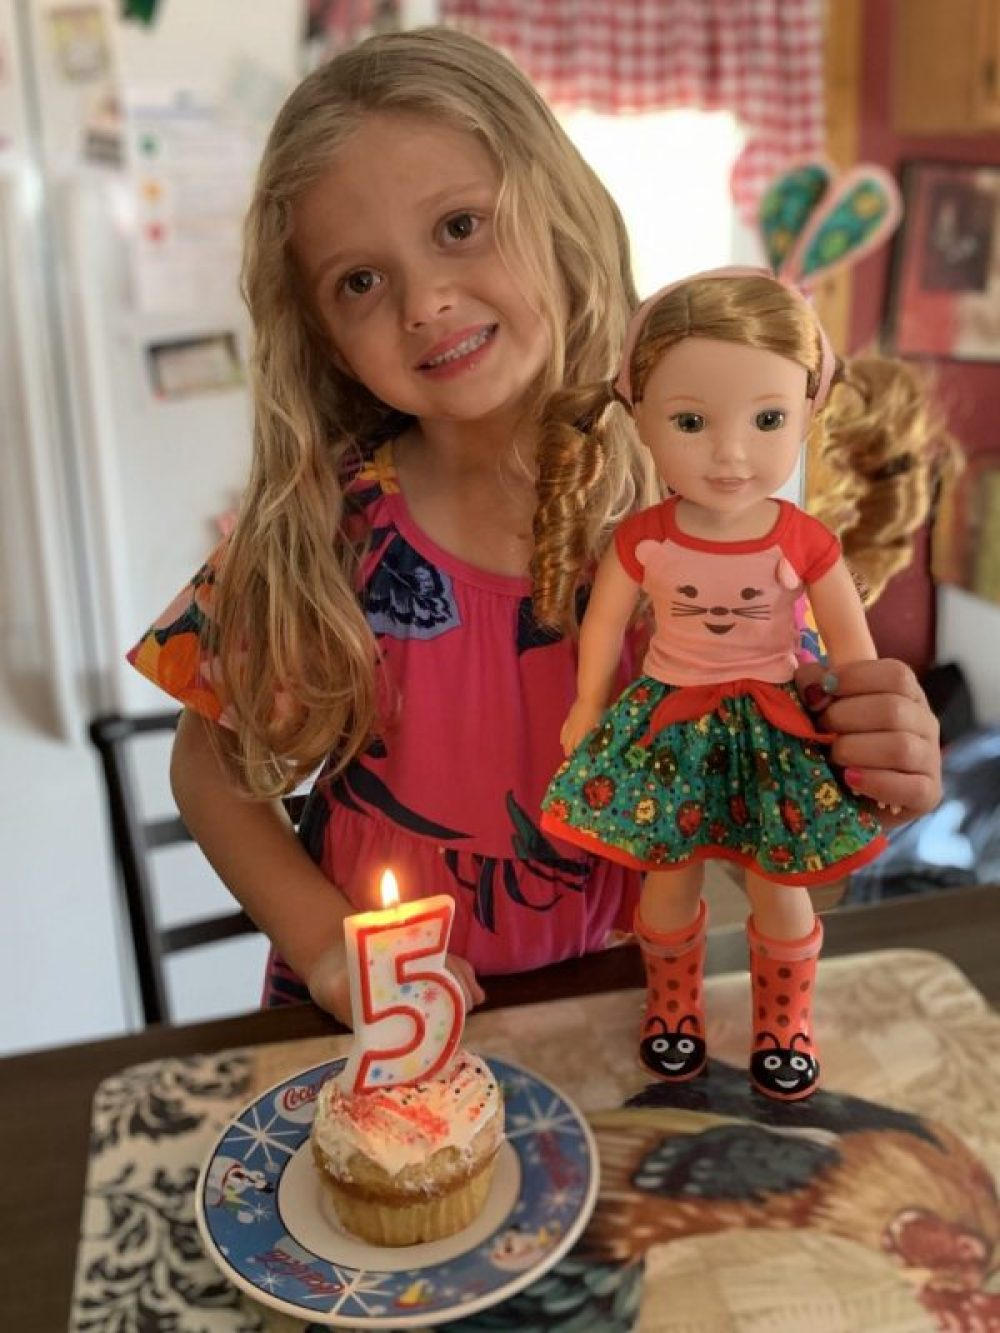 How to Make Your Daughter's 5th Birthday Special